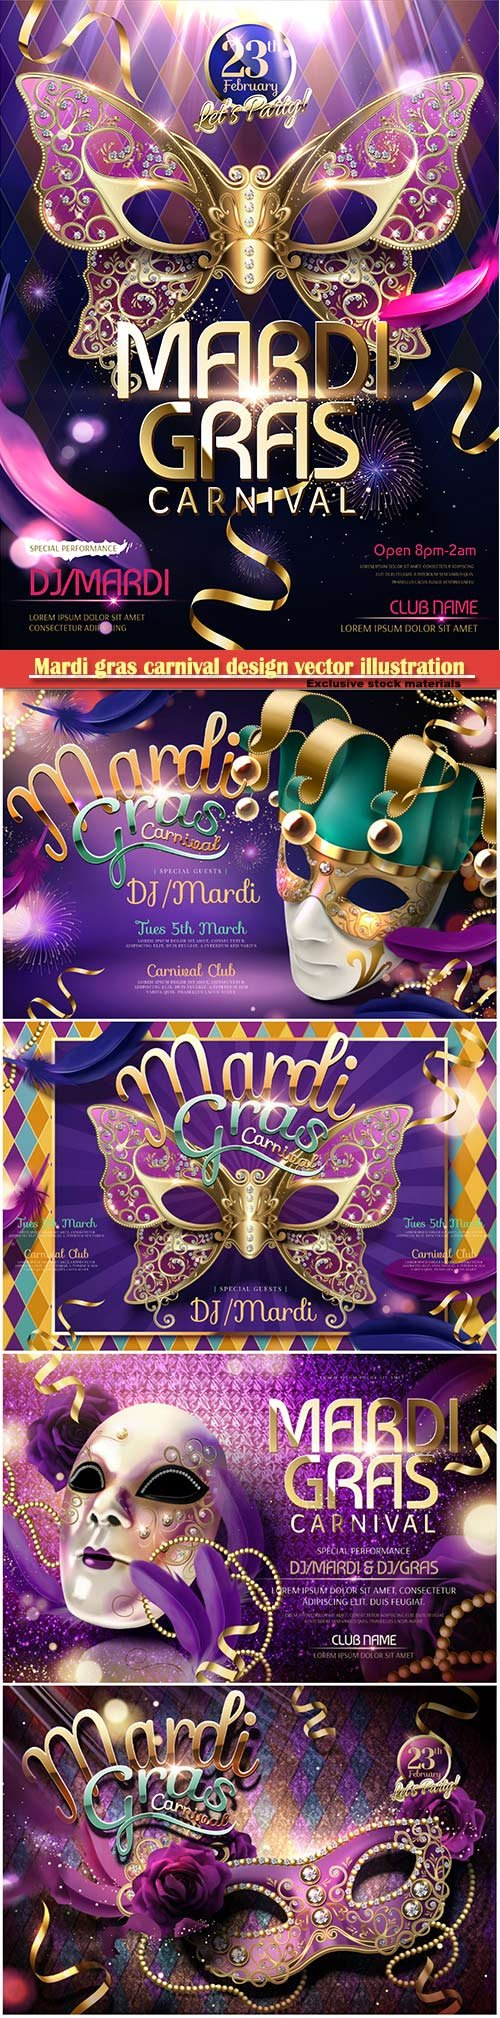 Mardi gras carnival design vector illustration